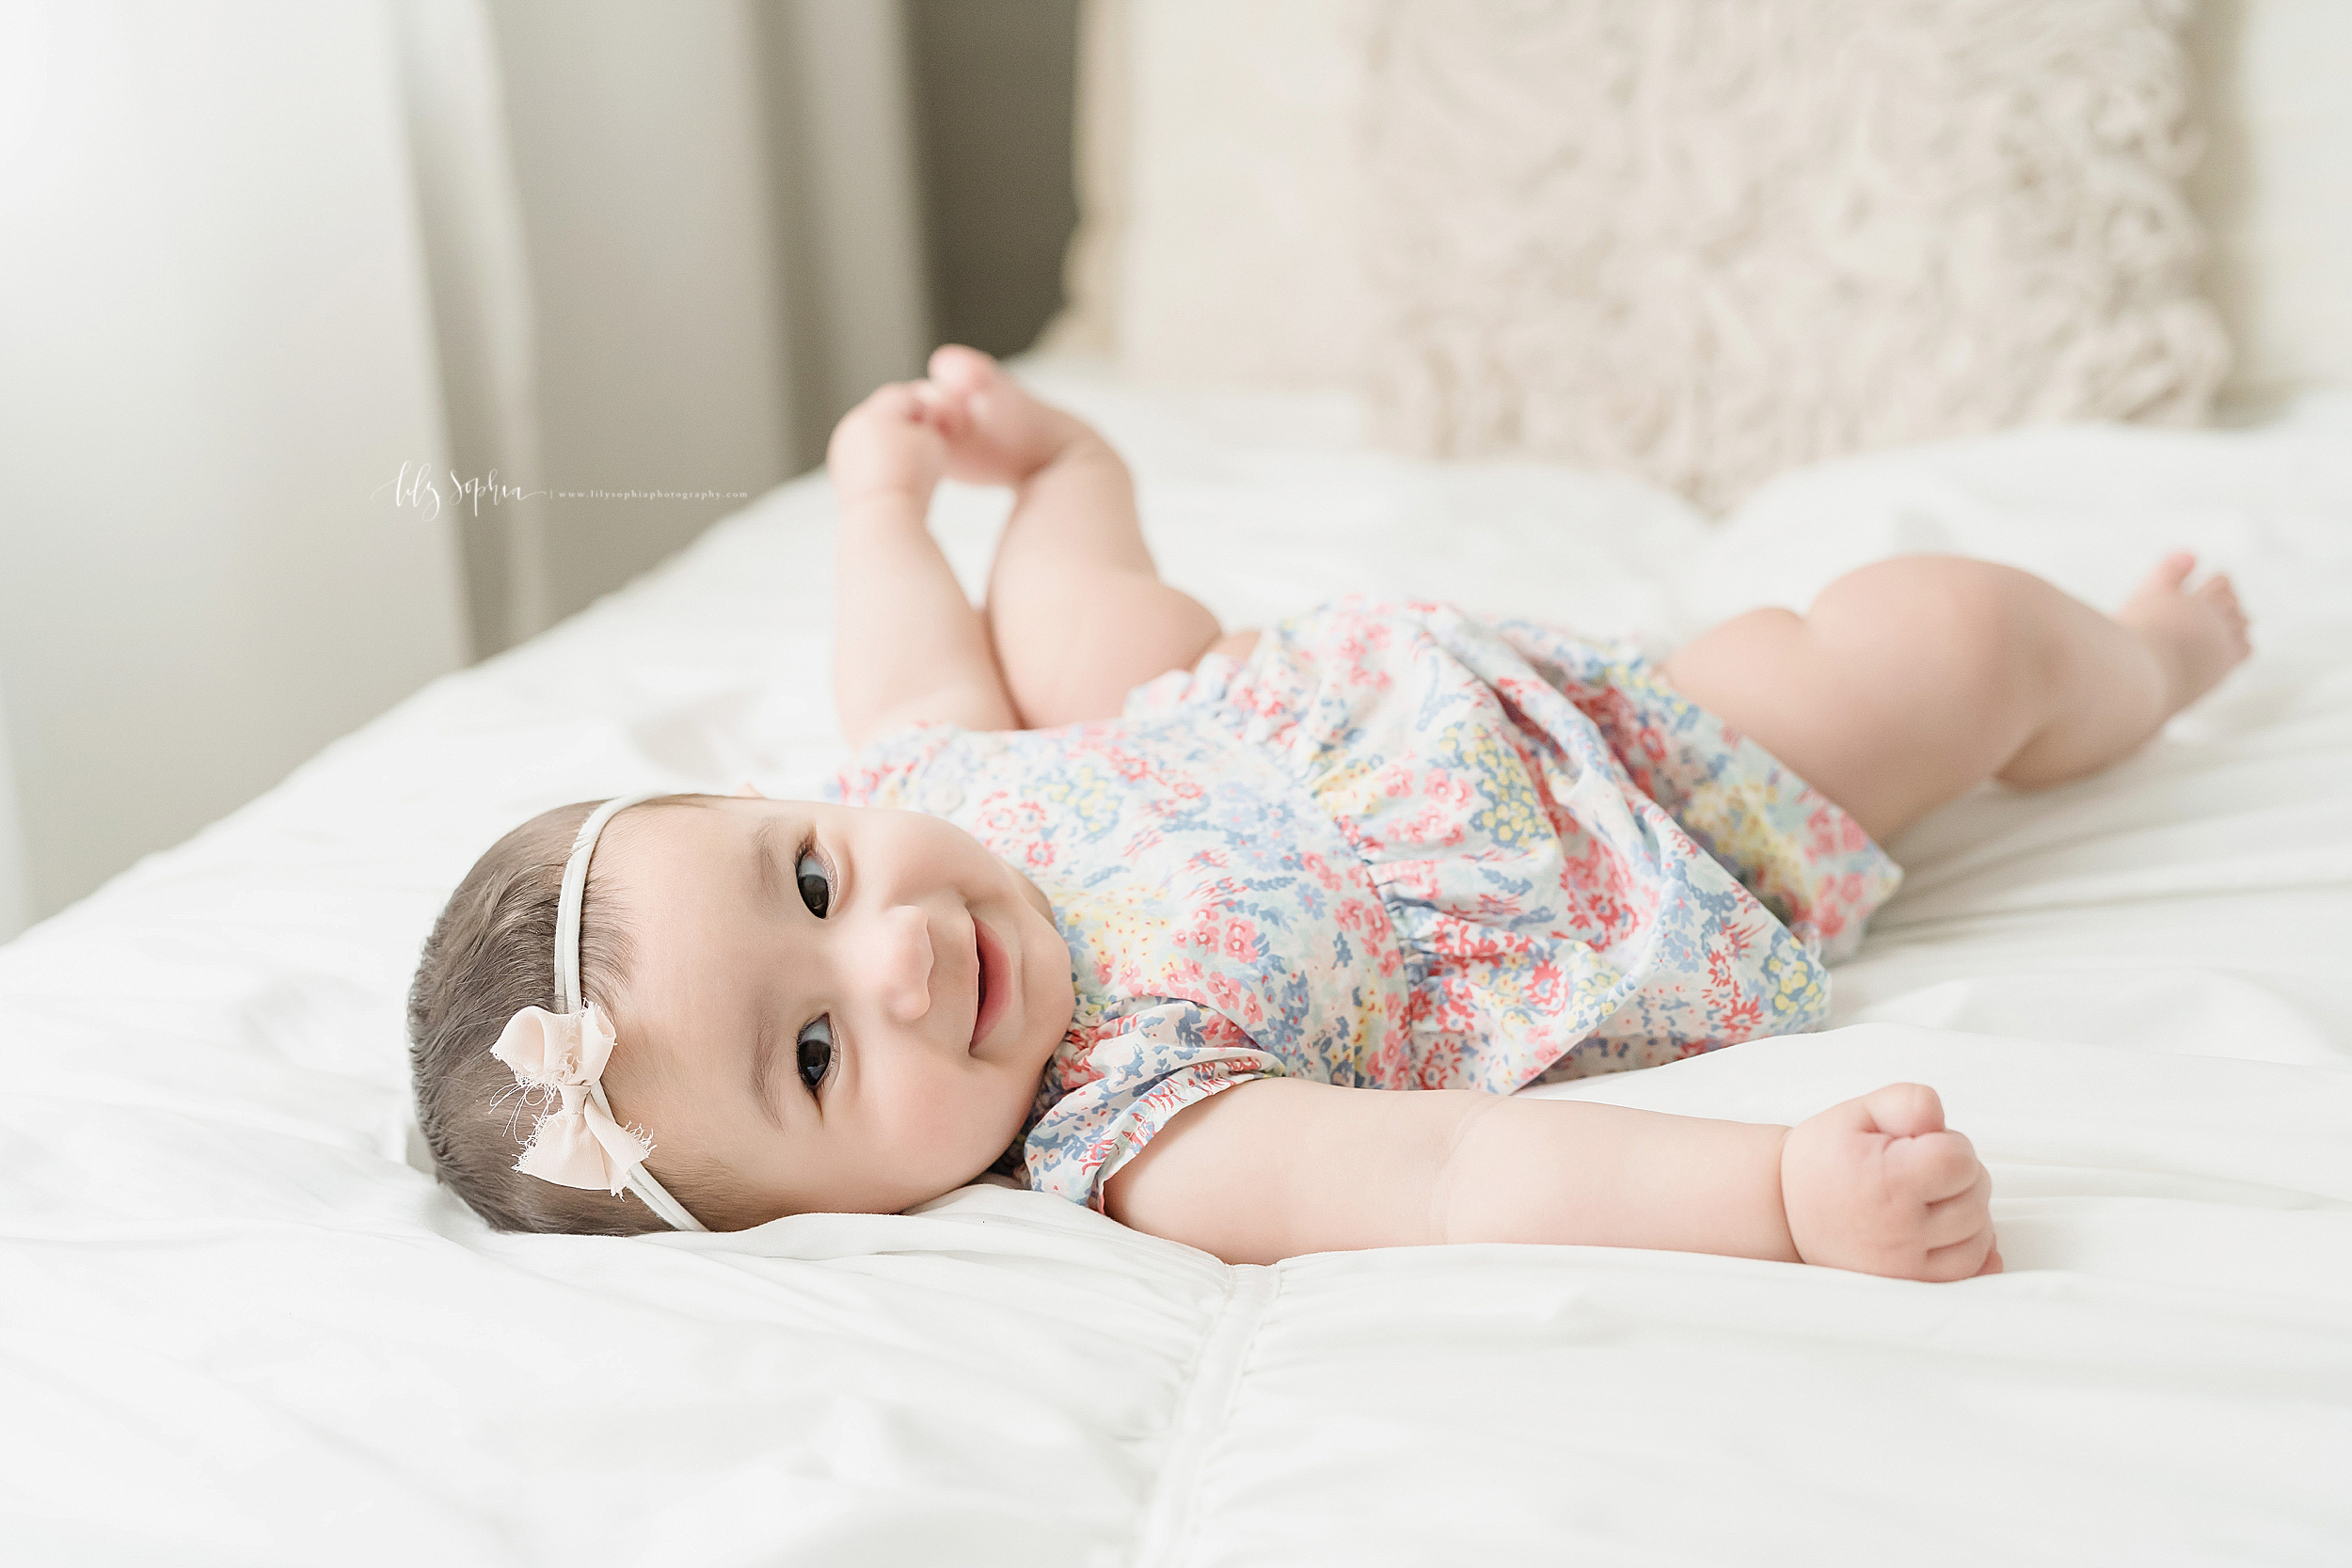 Photo of a smiling six month old as she plays with her toes while lying on a bed in an Atlanta natural light studio.